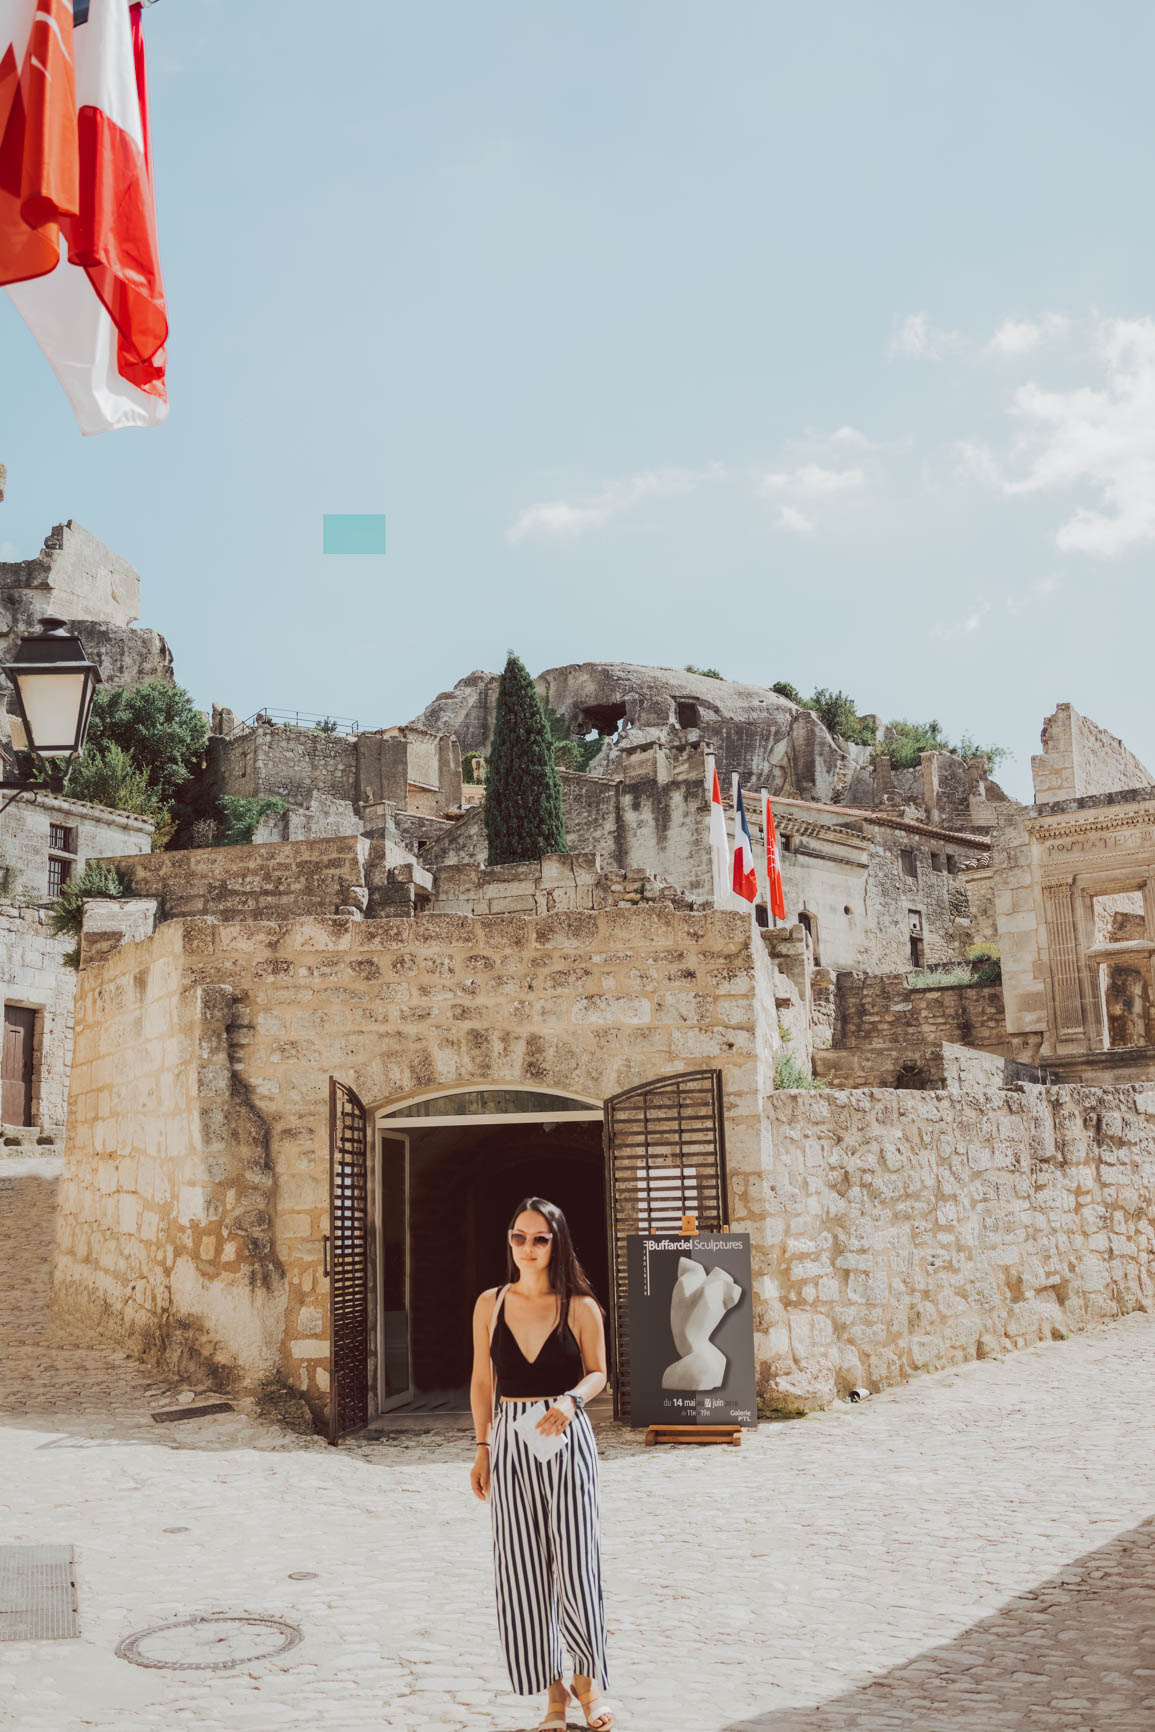 Les Baux de Provence - South of France 10 Days Road Trip Itinerary